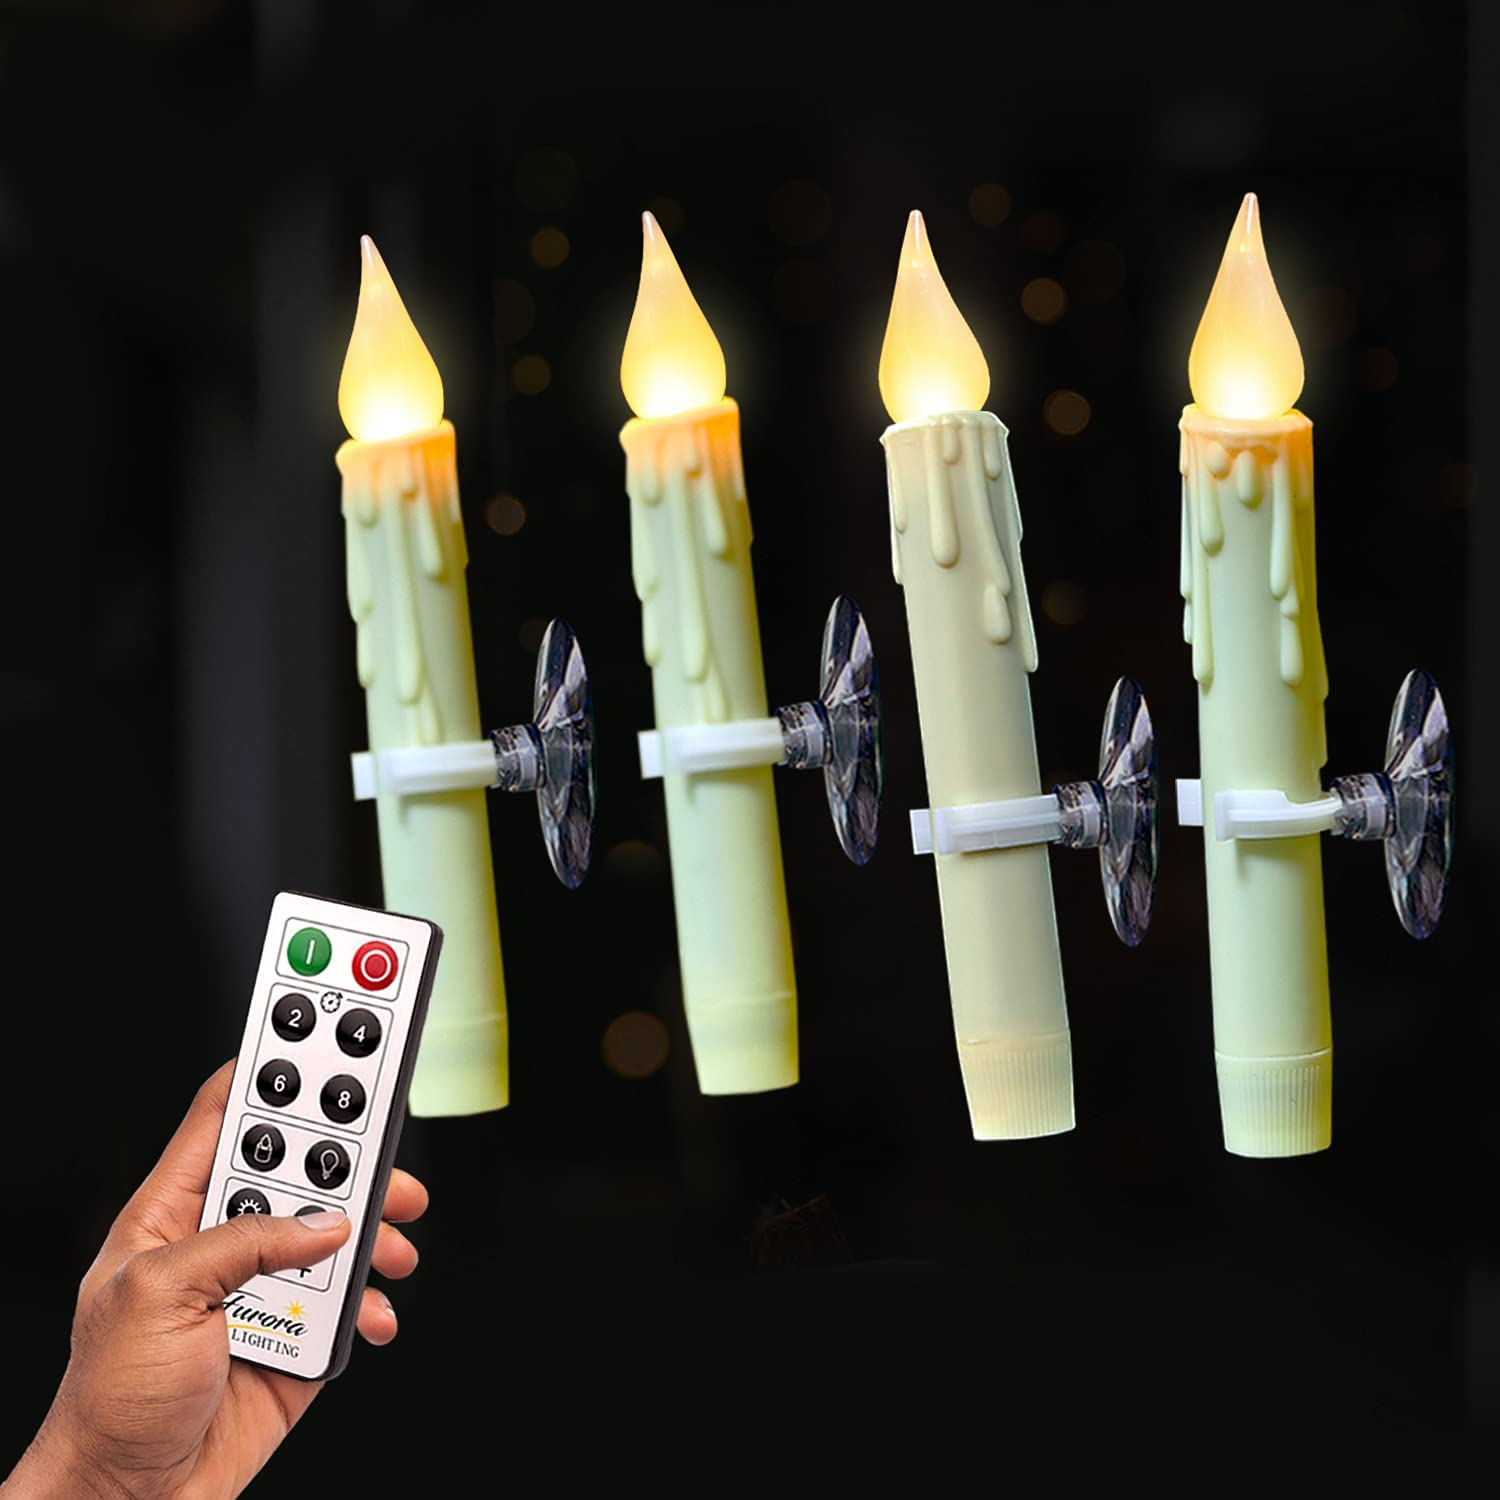 Flameless Taper Candles Remote Controlled Max 50% OFF Furora Free shipping anywhere in the nation of Pack 4 LIGH